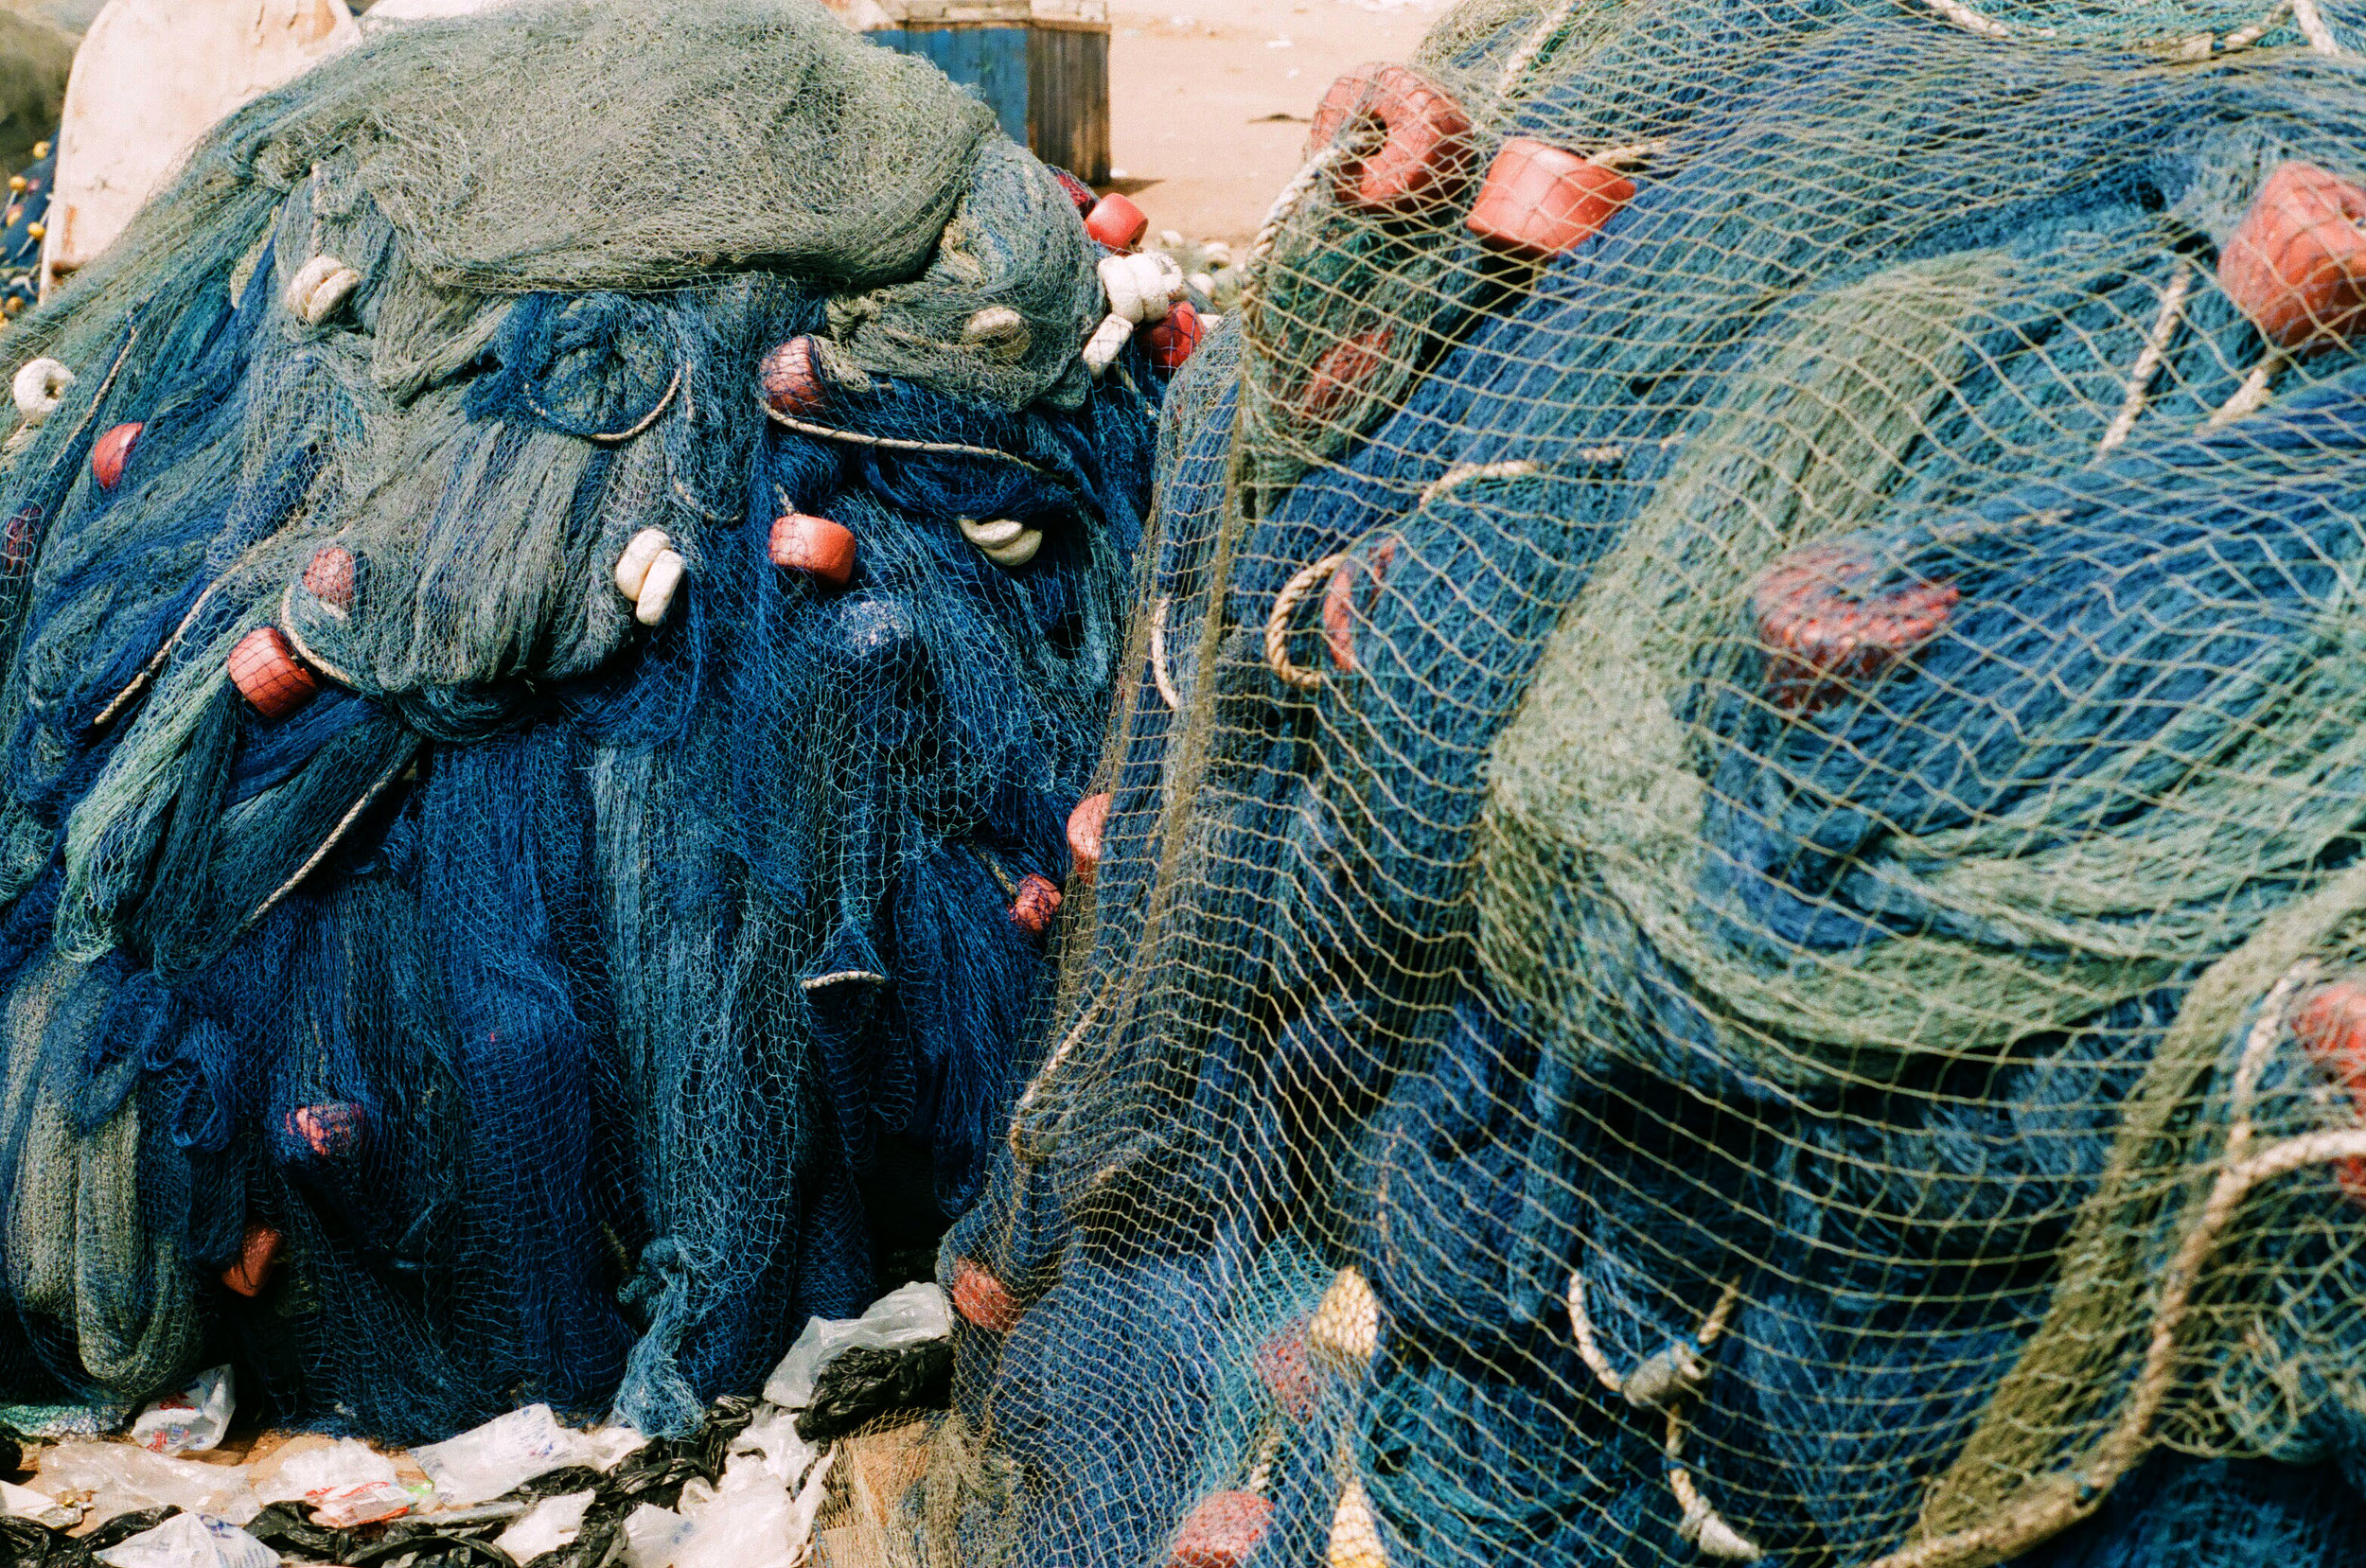 Nets used by fishermen adorn the lower levels of Elmina Castle.